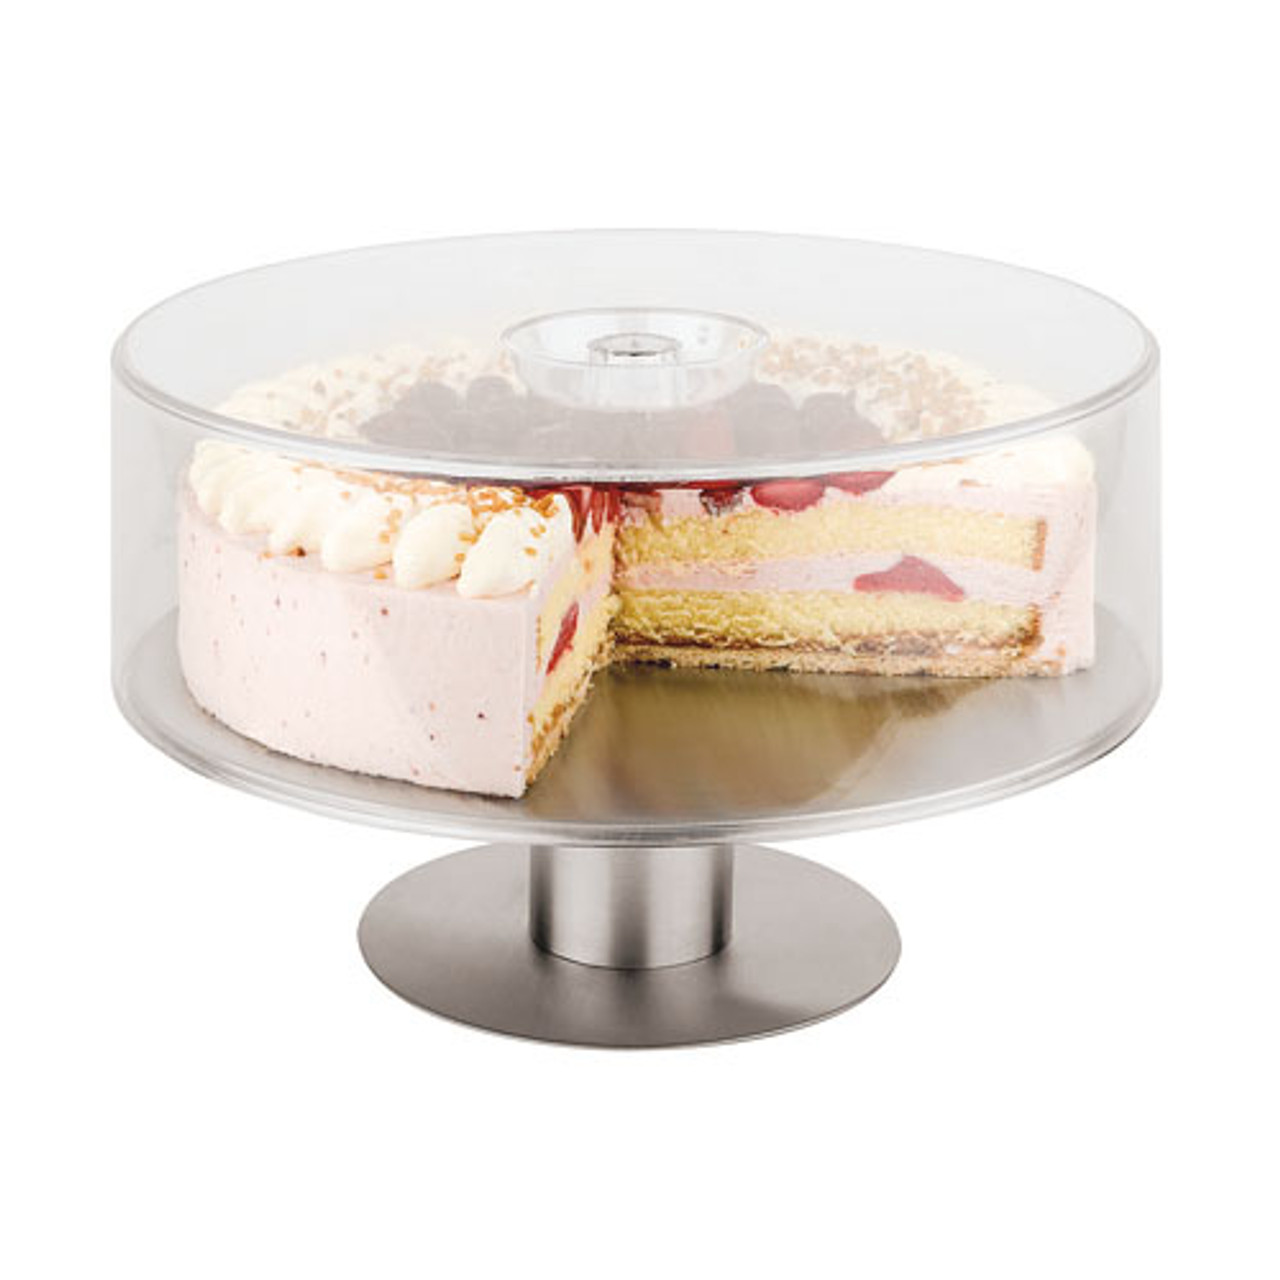 11 7/8 Dome Cover for S/S Revolving Cake Stand (item #47101-31), L 11.875 x W 11.875 x H 3.75